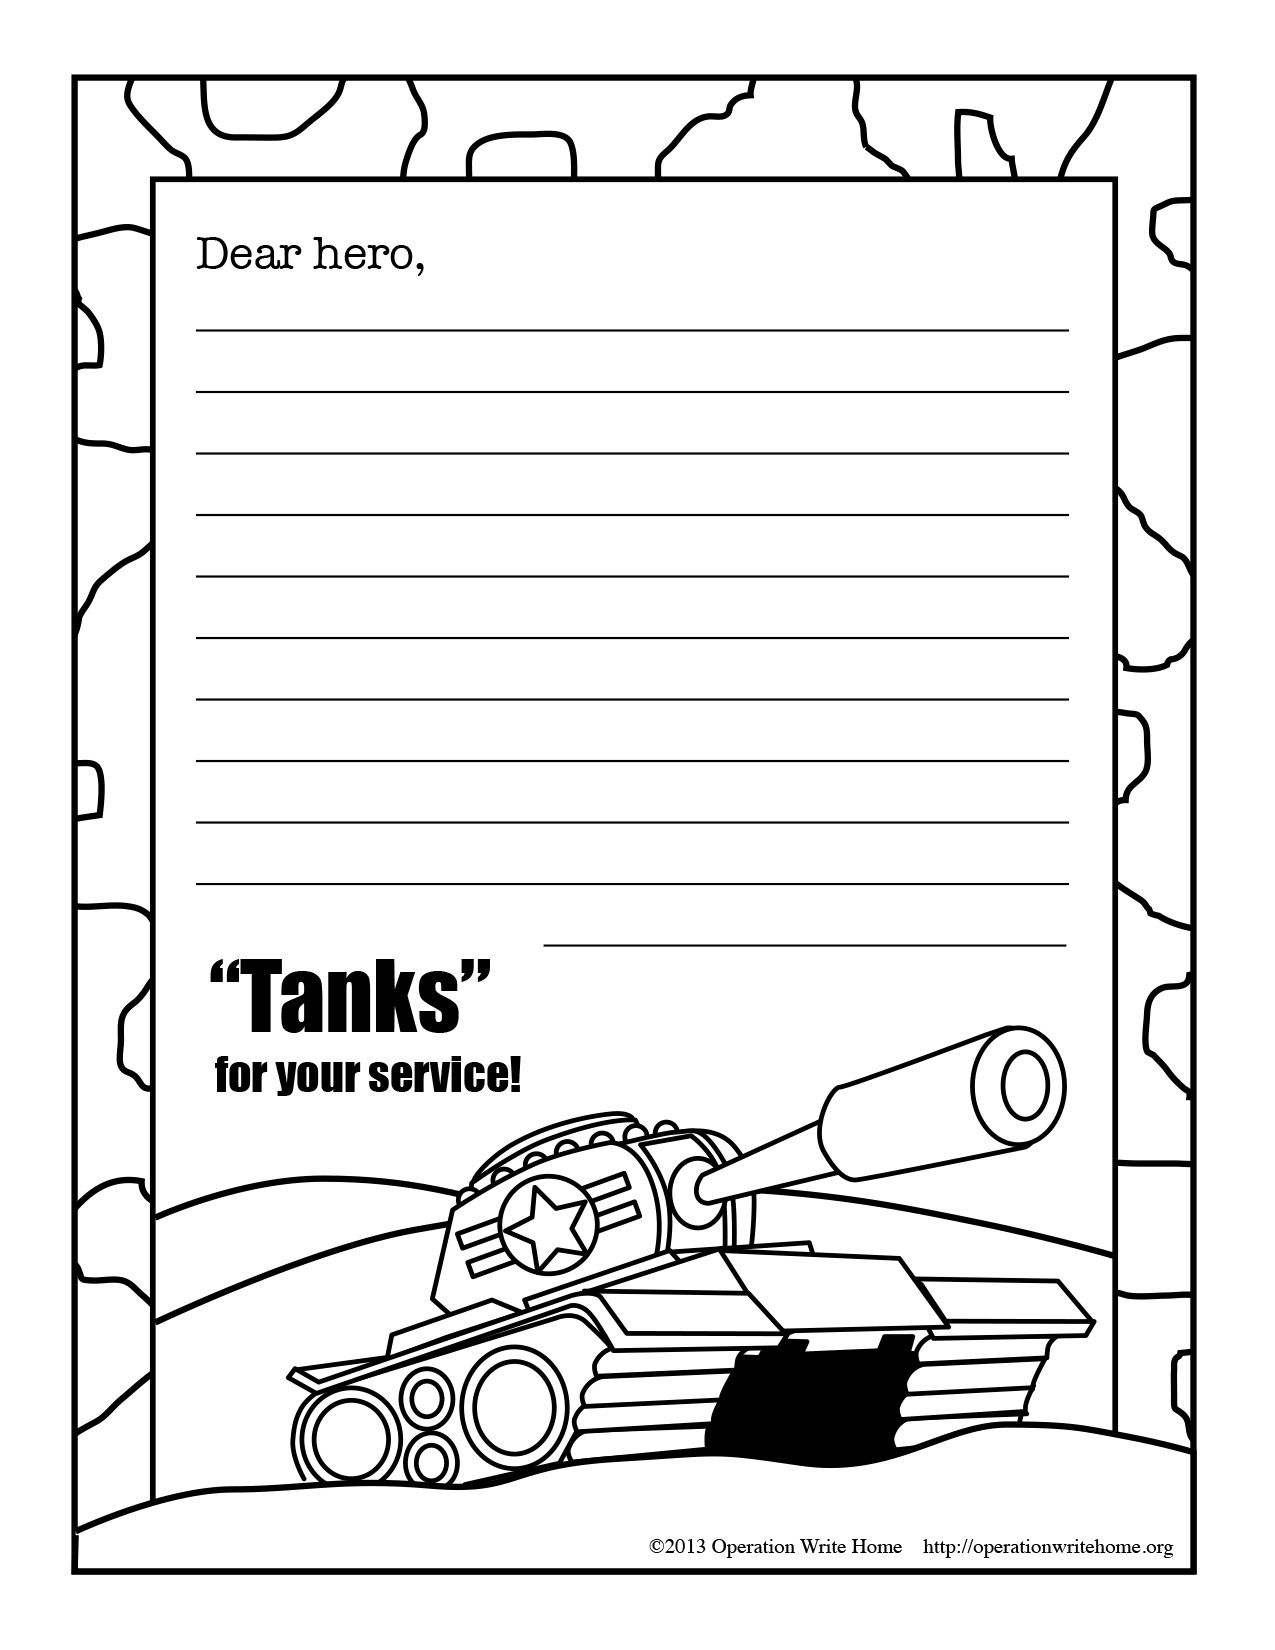 Coloring Pages Operation Write Home Military Kids Coloring Pages Military Child Month